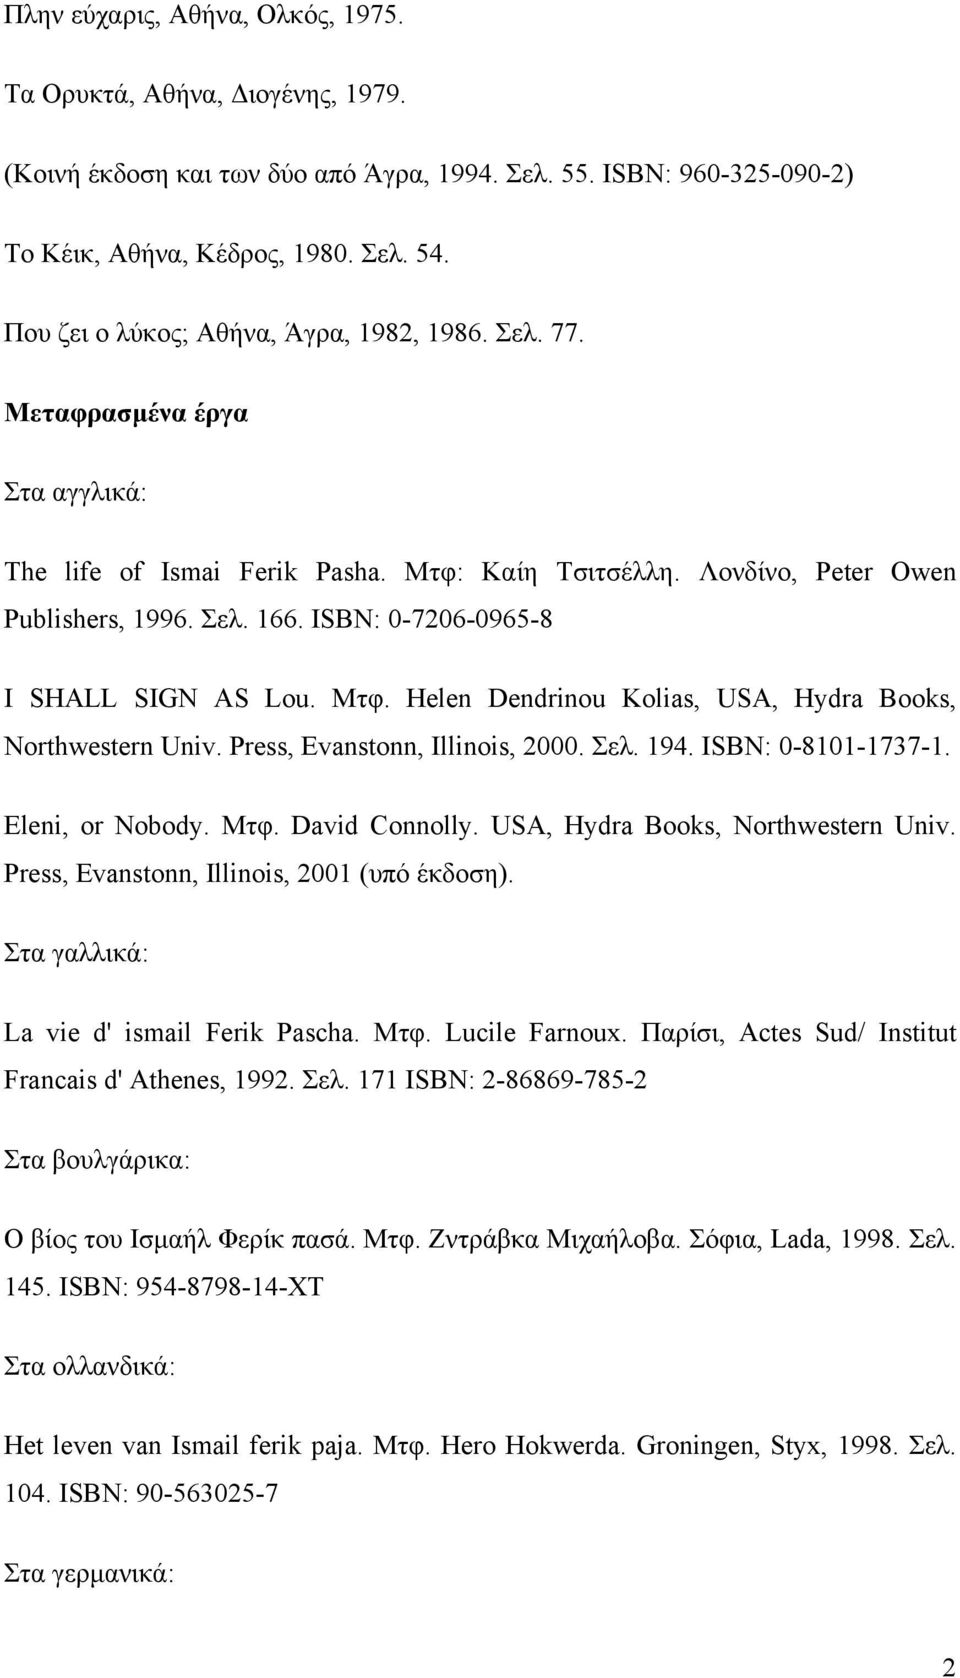 ΙSBN: 0-7206-0965-8 I SHALL SIGN AS Lou. Μτφ. Helen Dendrinou Kolias, USA, Hydra Books, Northwestern Univ. Press, Evanstonn, Illinois, 2000. Σελ. 194. ISBN: 0-8101-1737-1. Eleni, or Nobody. Μτφ. David Connolly.